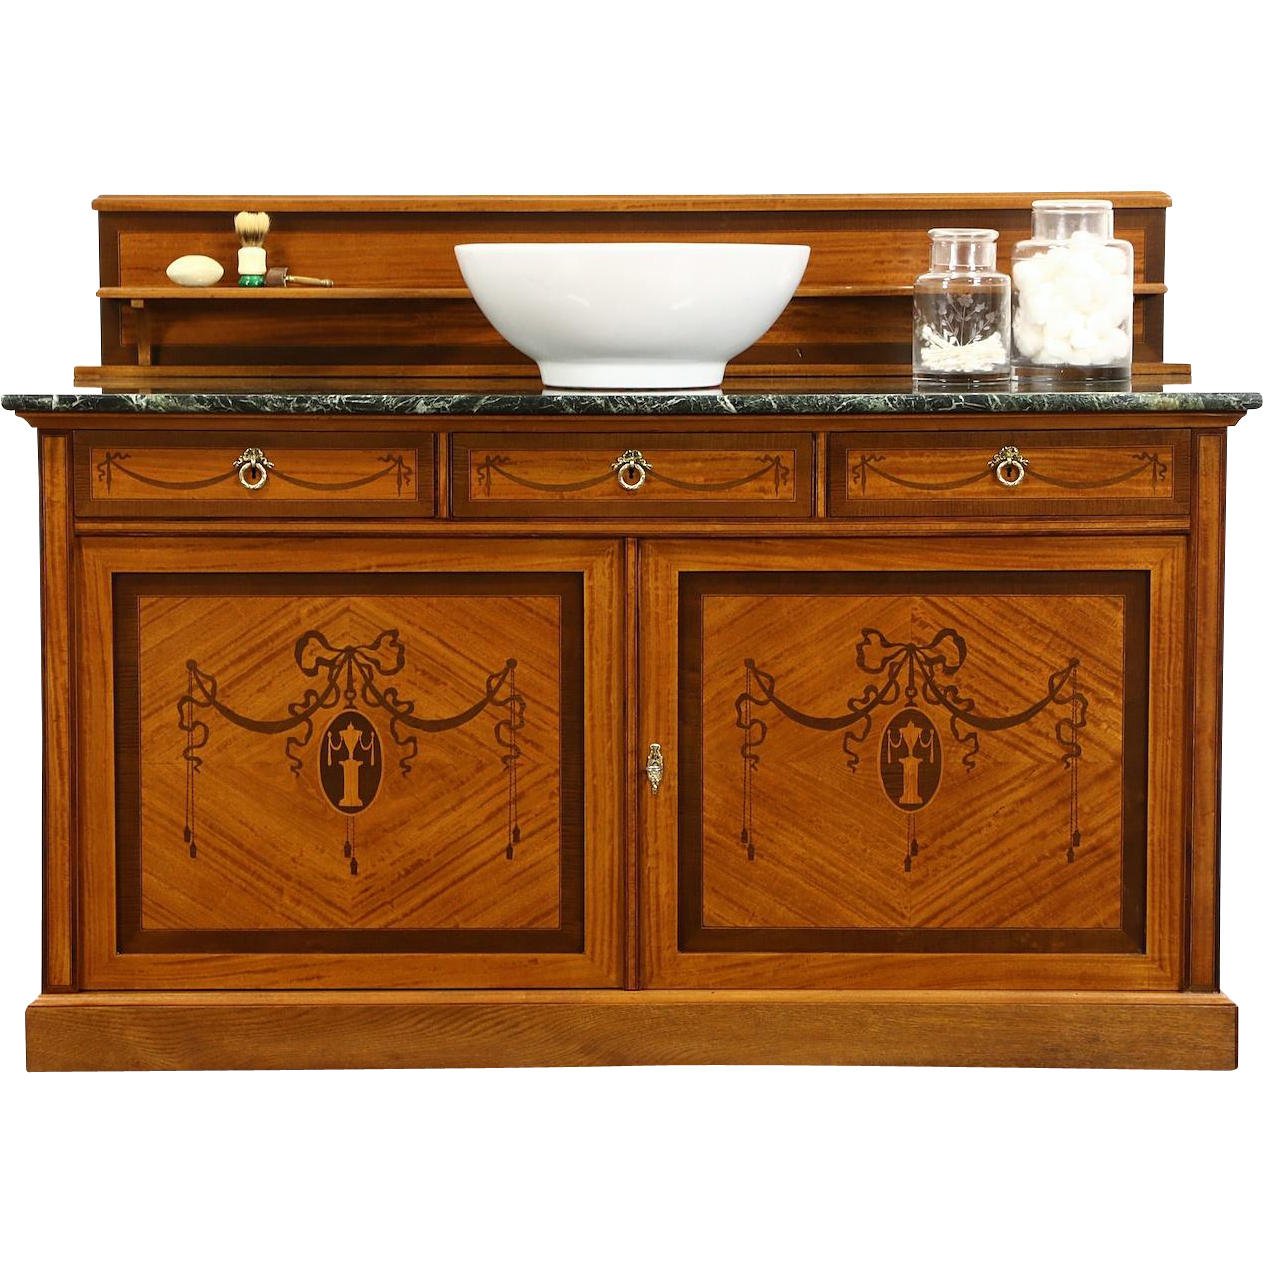 French 1915 Antique Marble Top Sideboard, Server, Bar or Vessel Sink Vanity